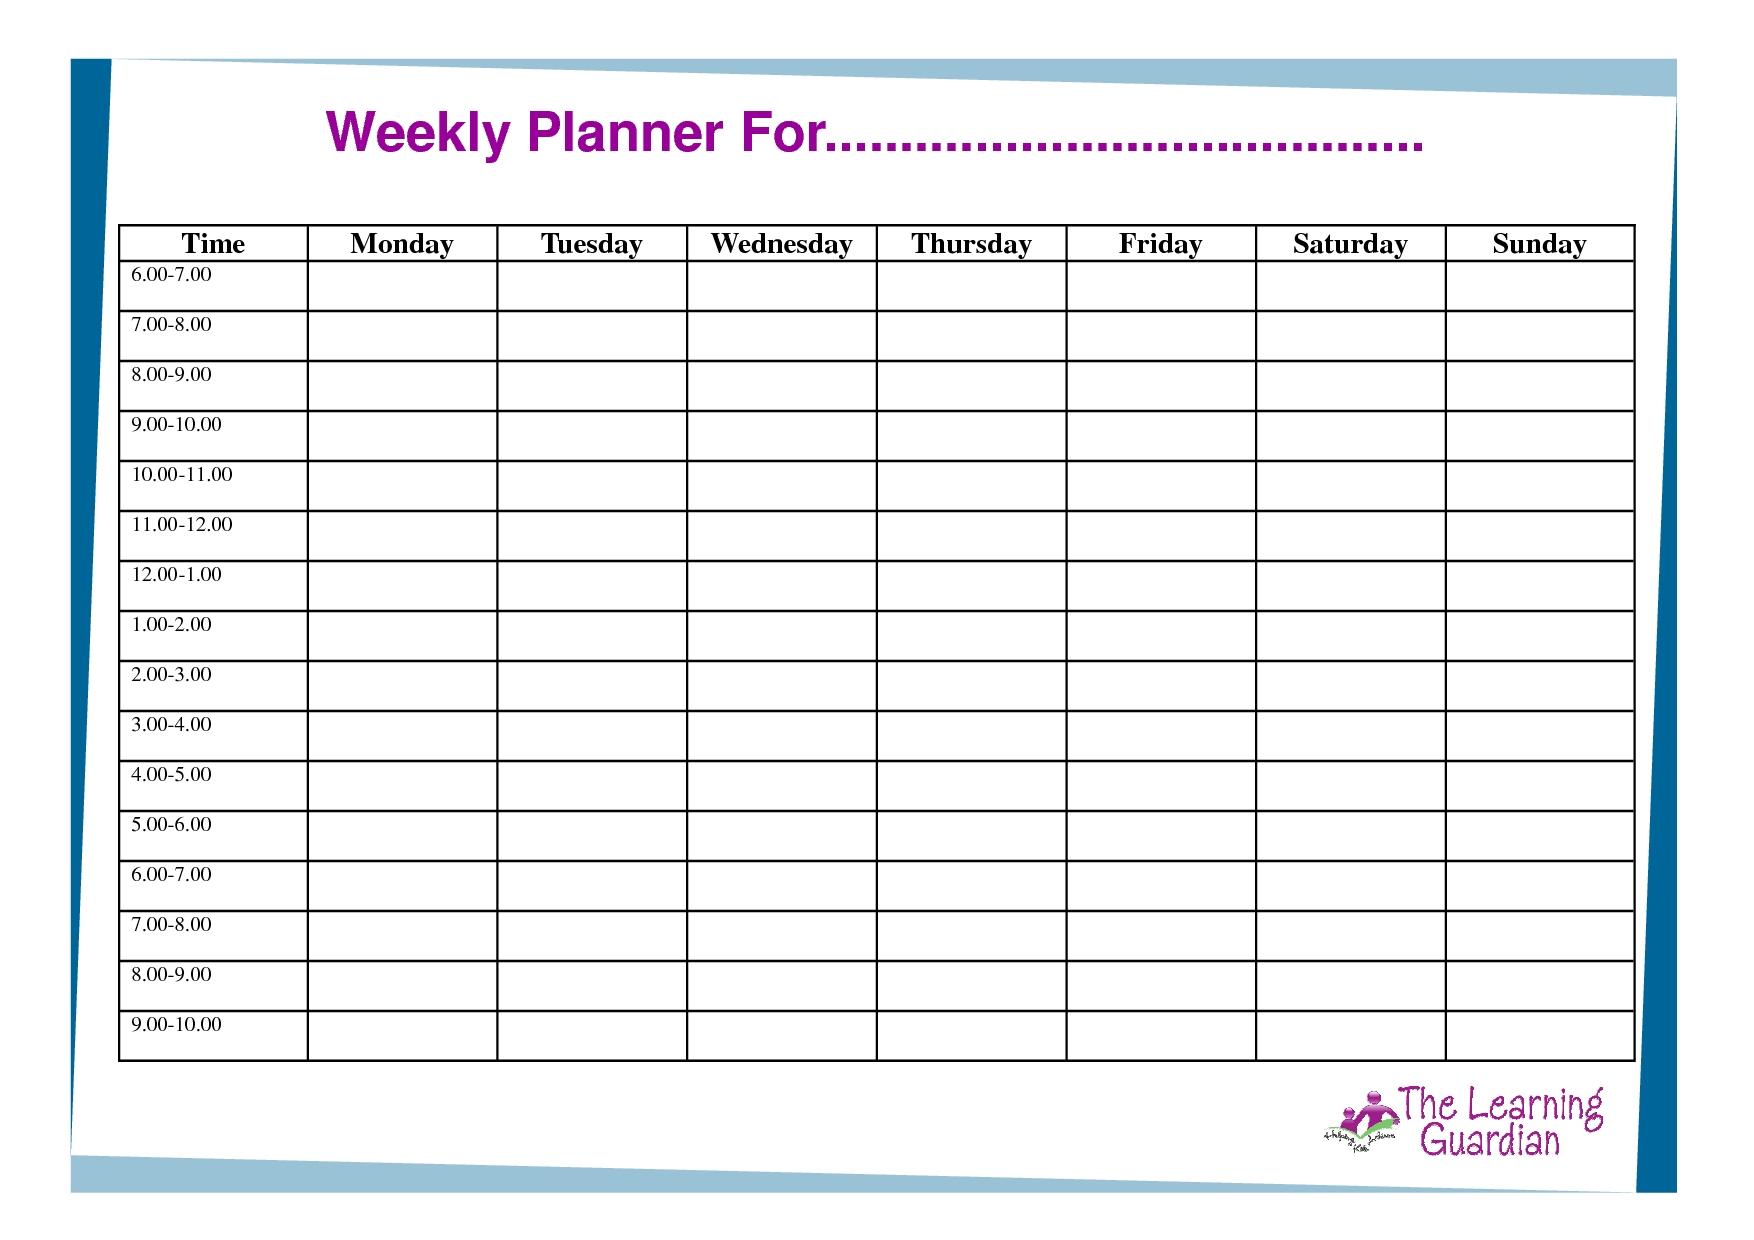 Blank Weekly Schedule With Times  Calendar Inspiration Design within Weekly Calendar Template With Times